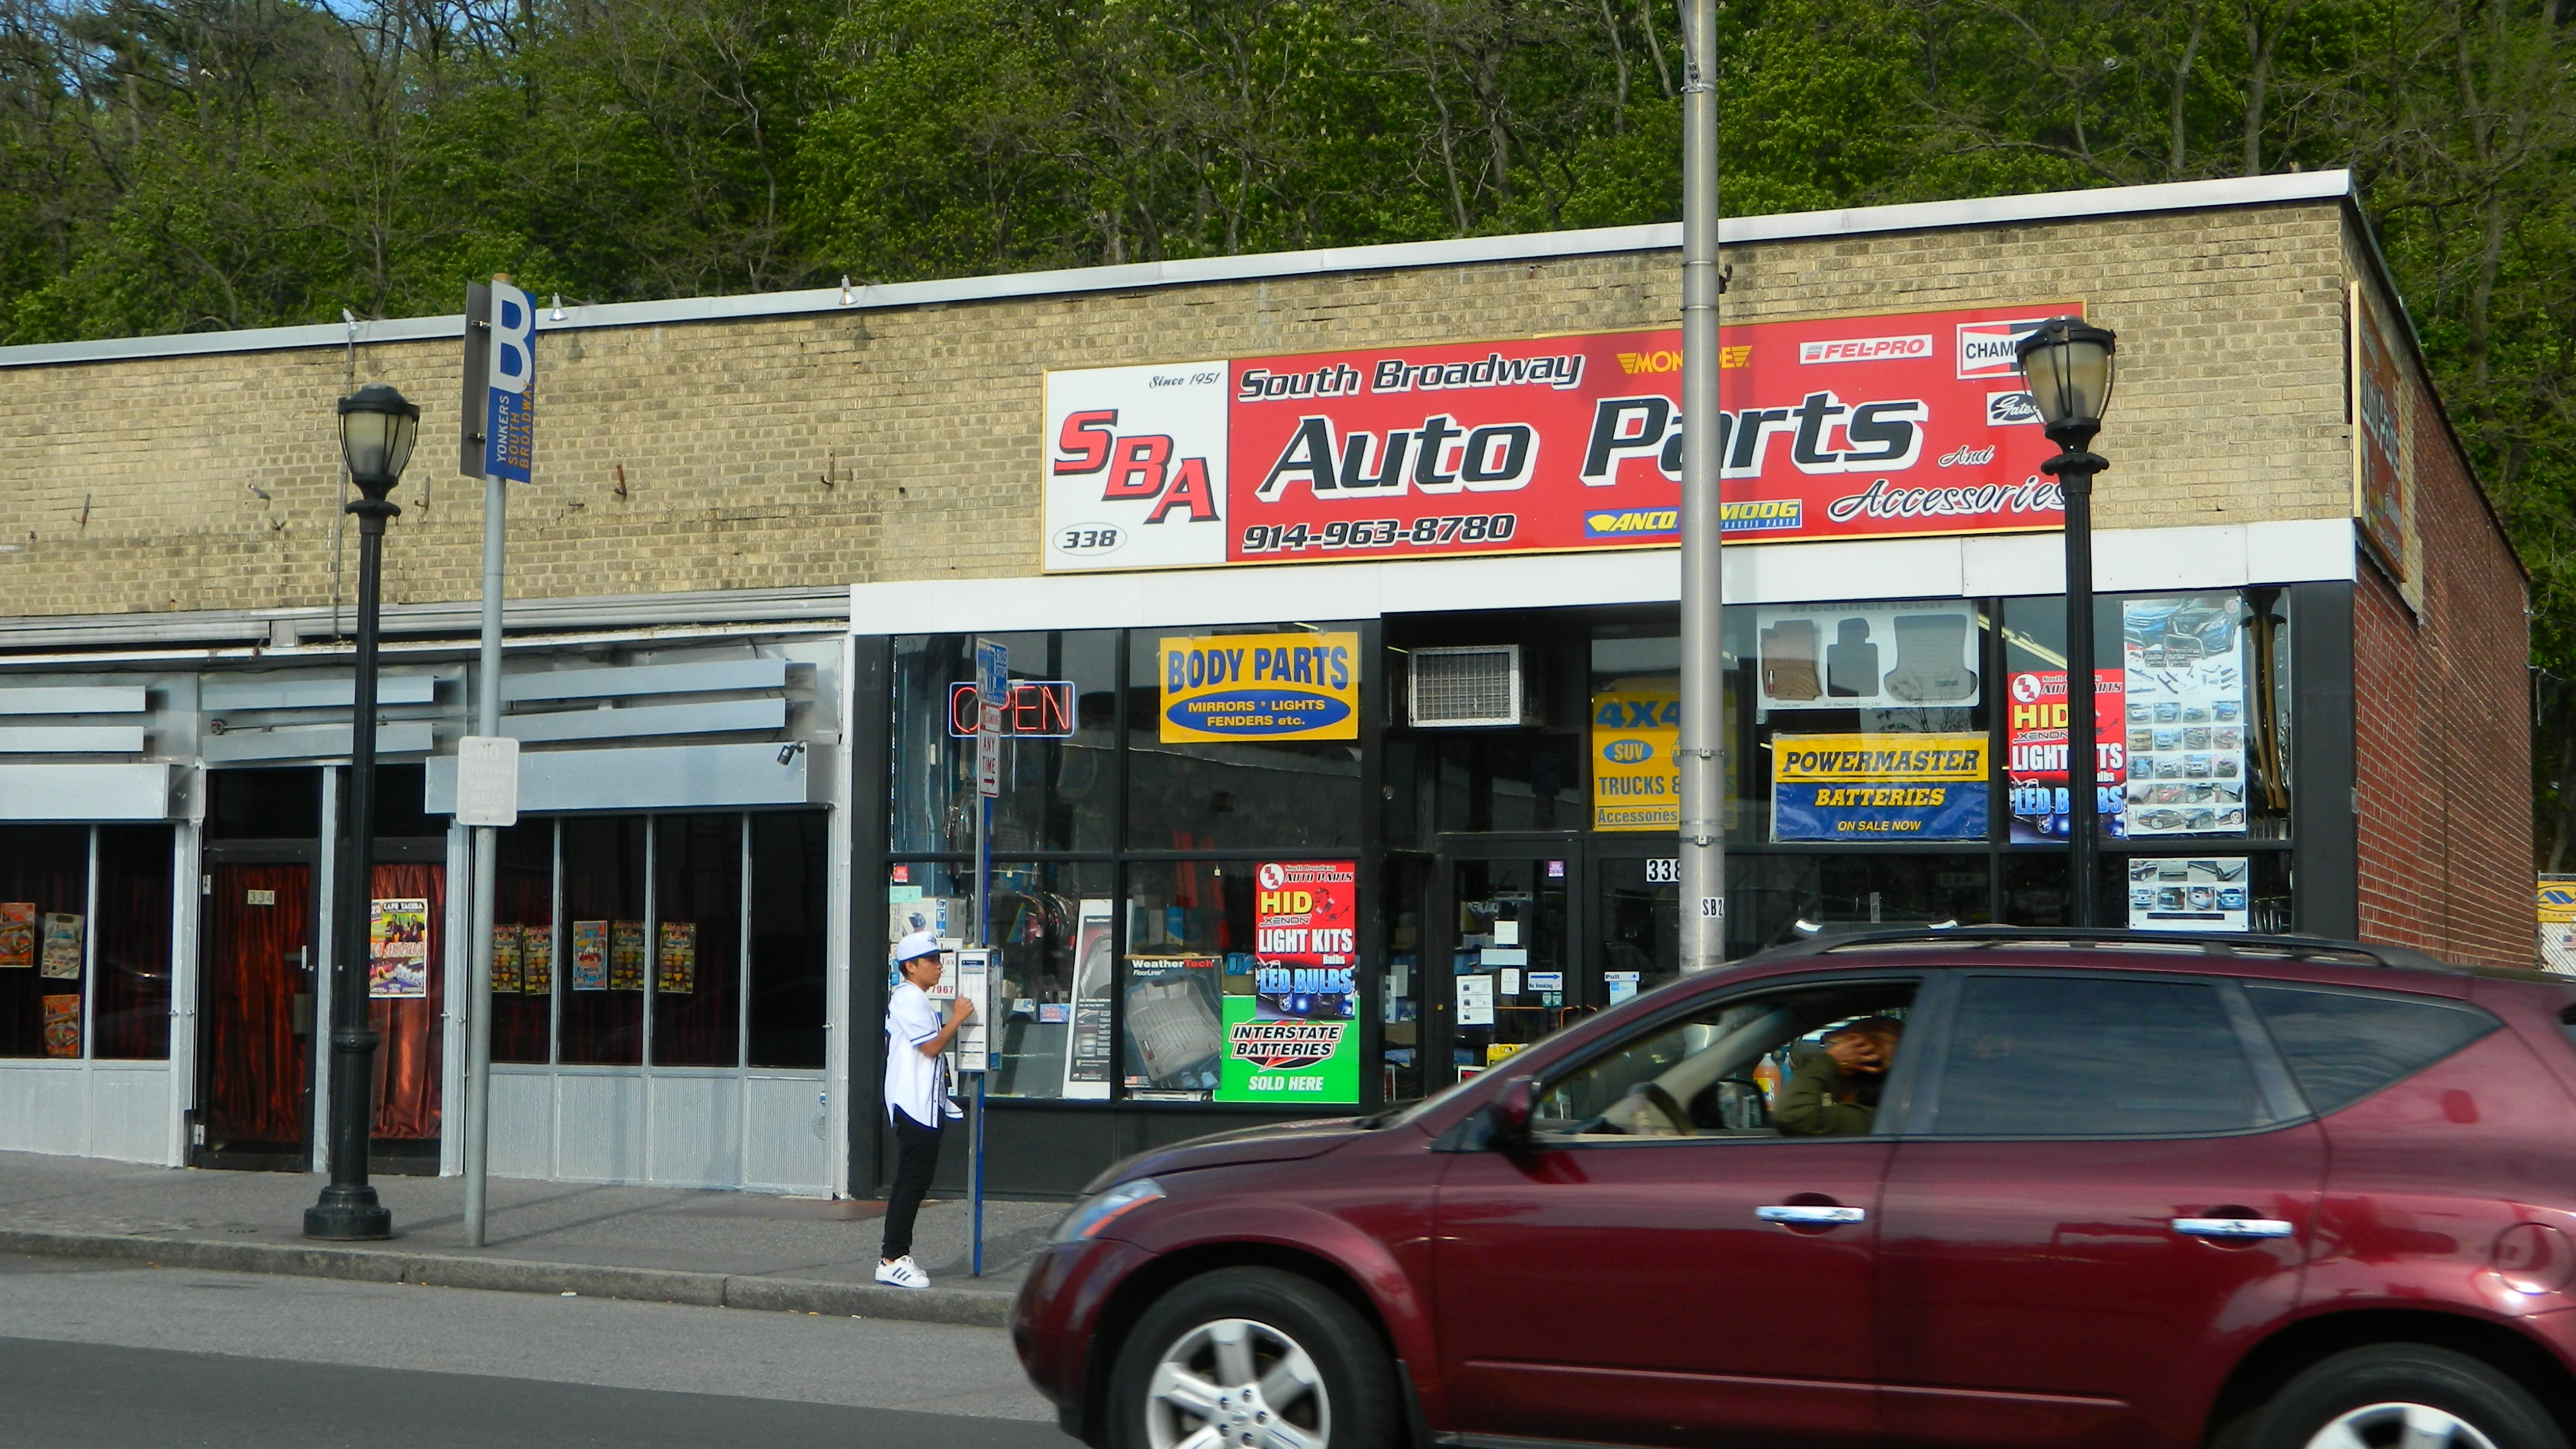 South Broadway Auto Parts In Yonkers Ny 10705